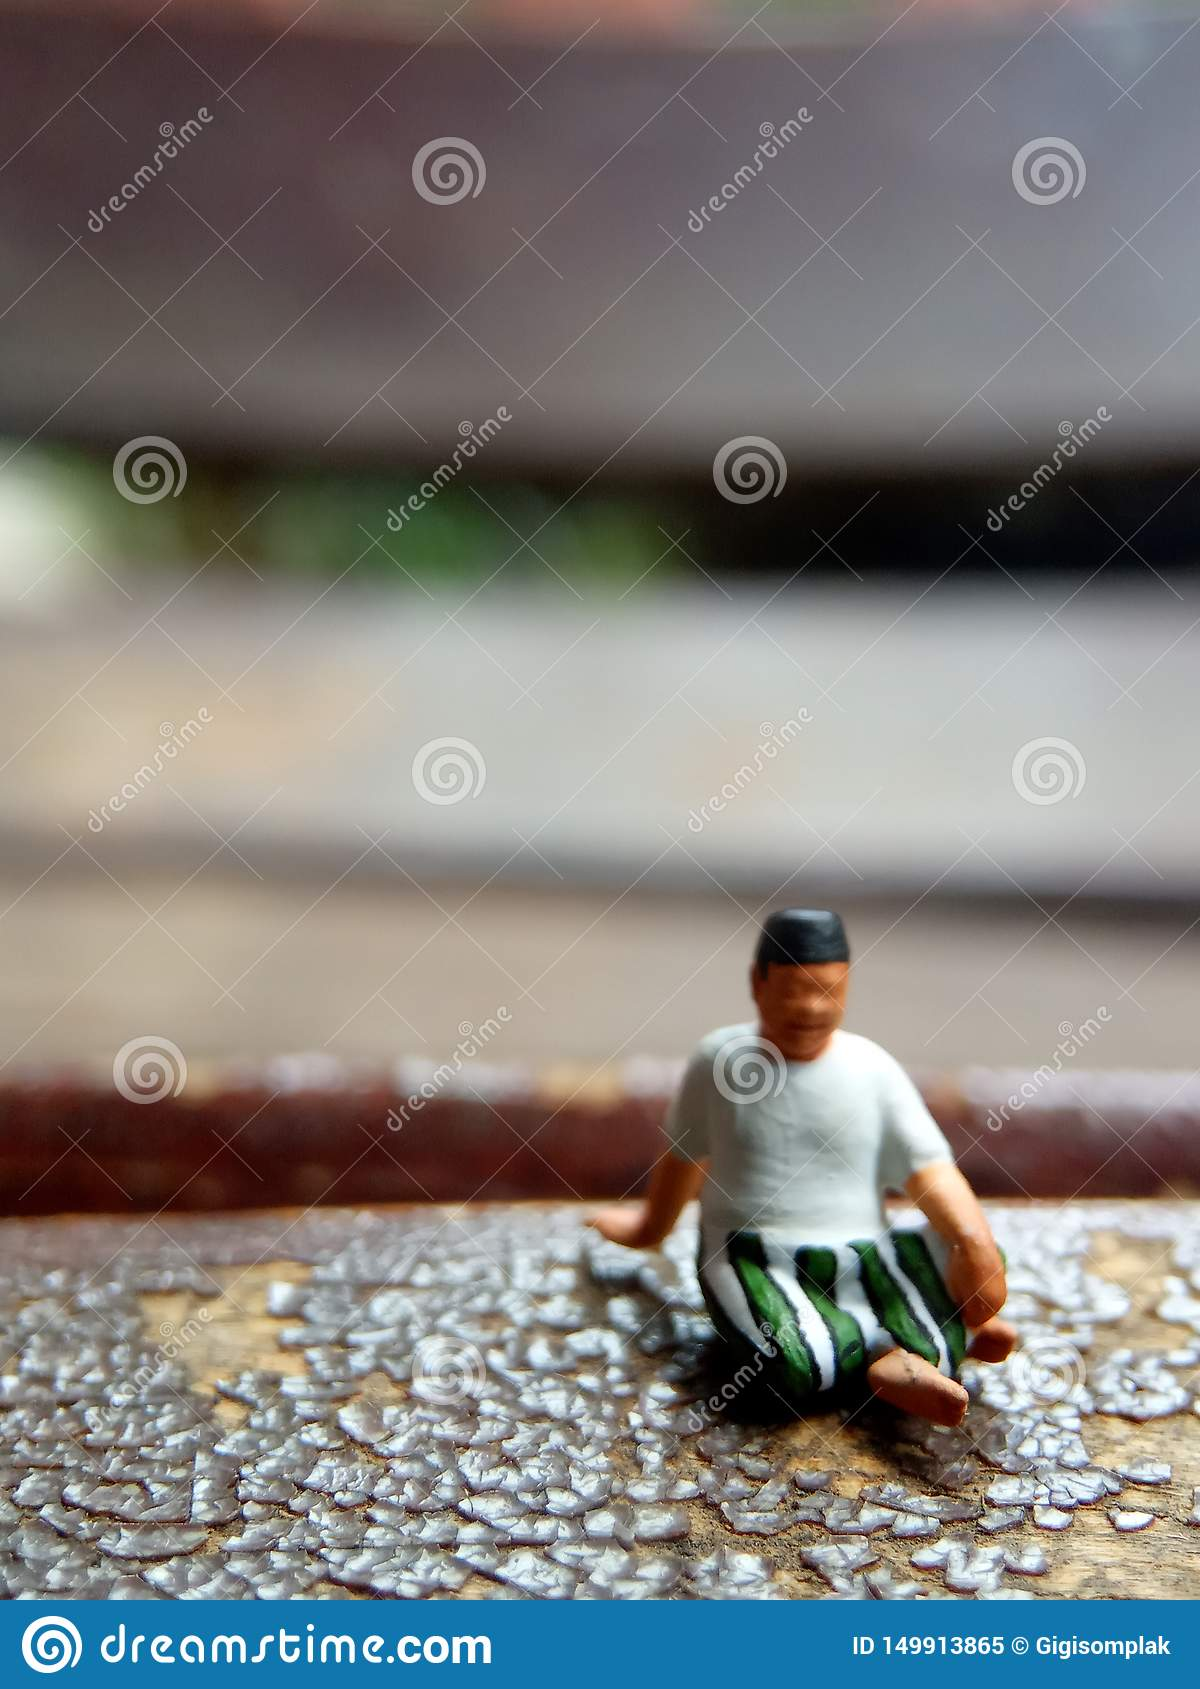 Mini figure toy old man sit at scratch wooden chair, with copy or negative space for text placement area